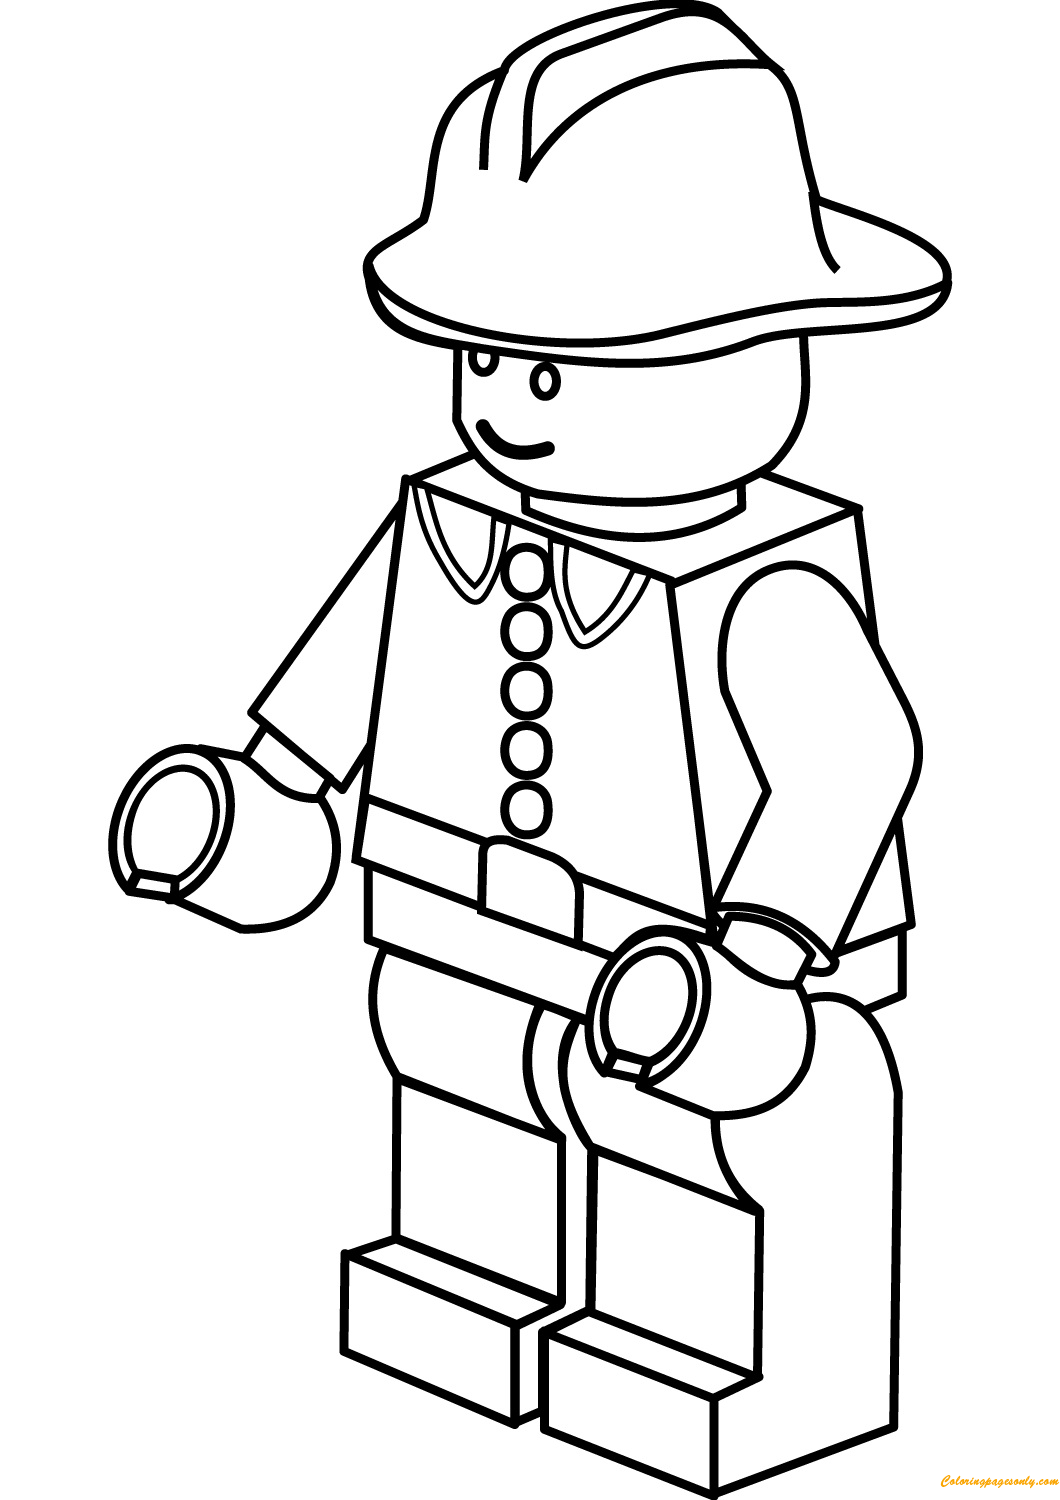 Lego City Firefighter Coloring Page - Free Coloring Pages ...